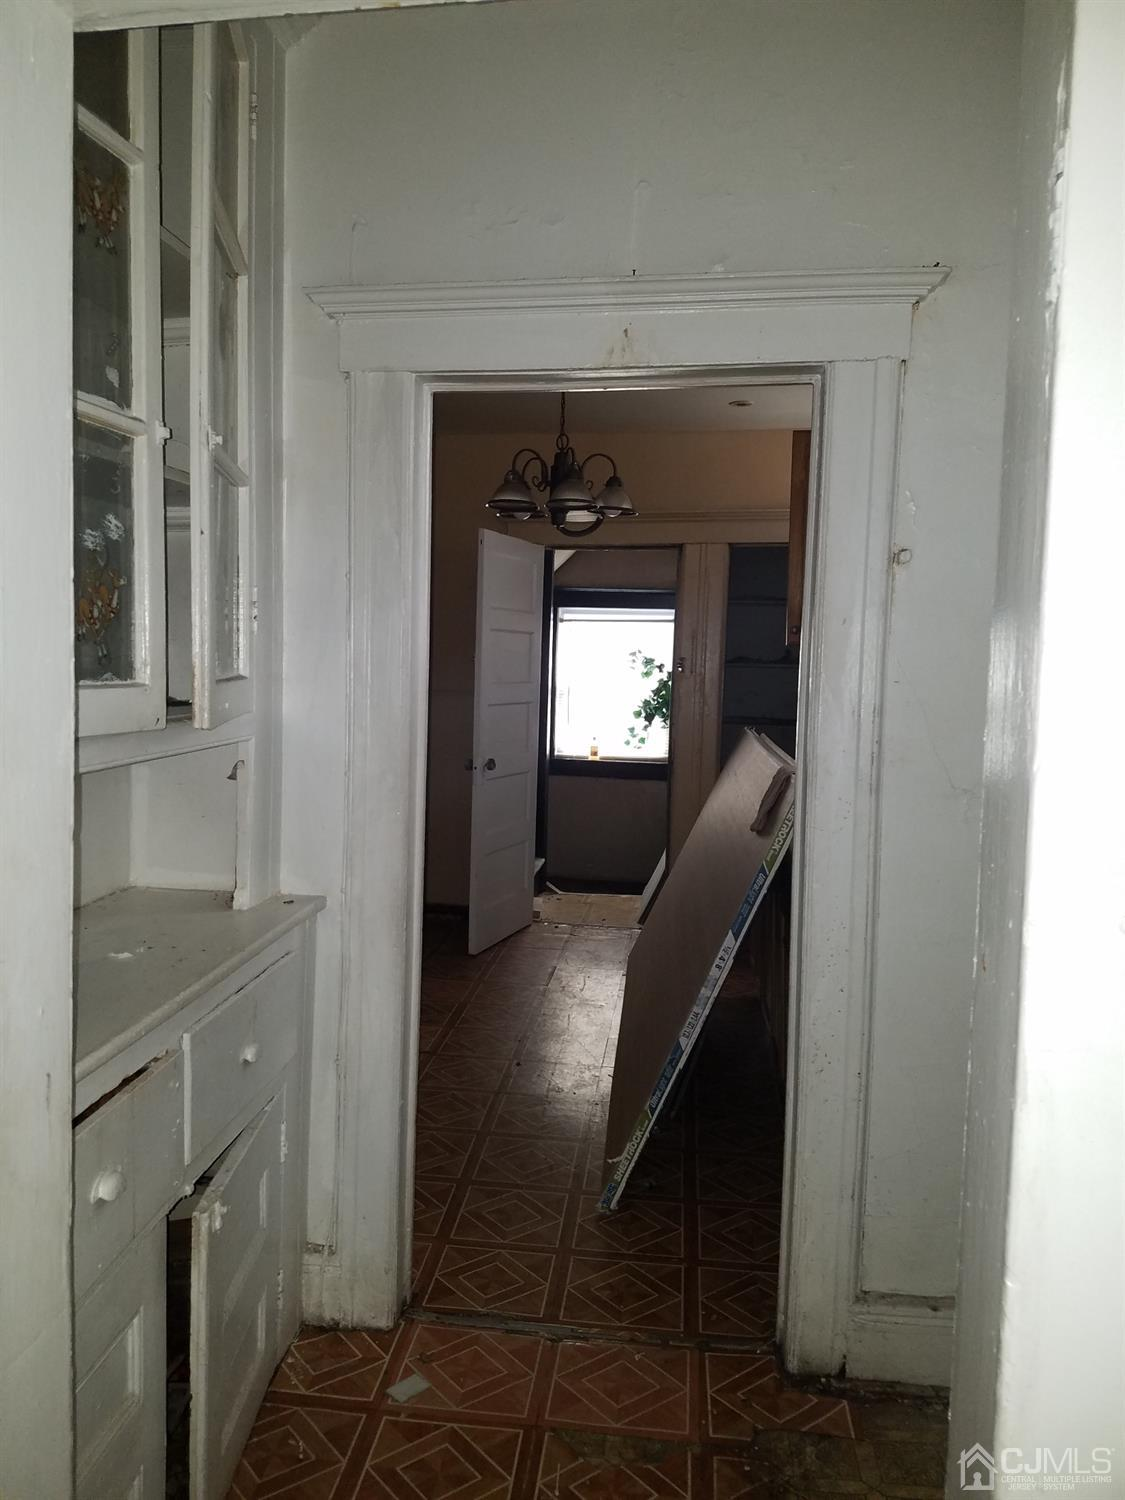 118 Orient Avenue, Jersey City, New Jersey 07305, ,Multifamily,For Sale,118 Orient Avenue,2115215R